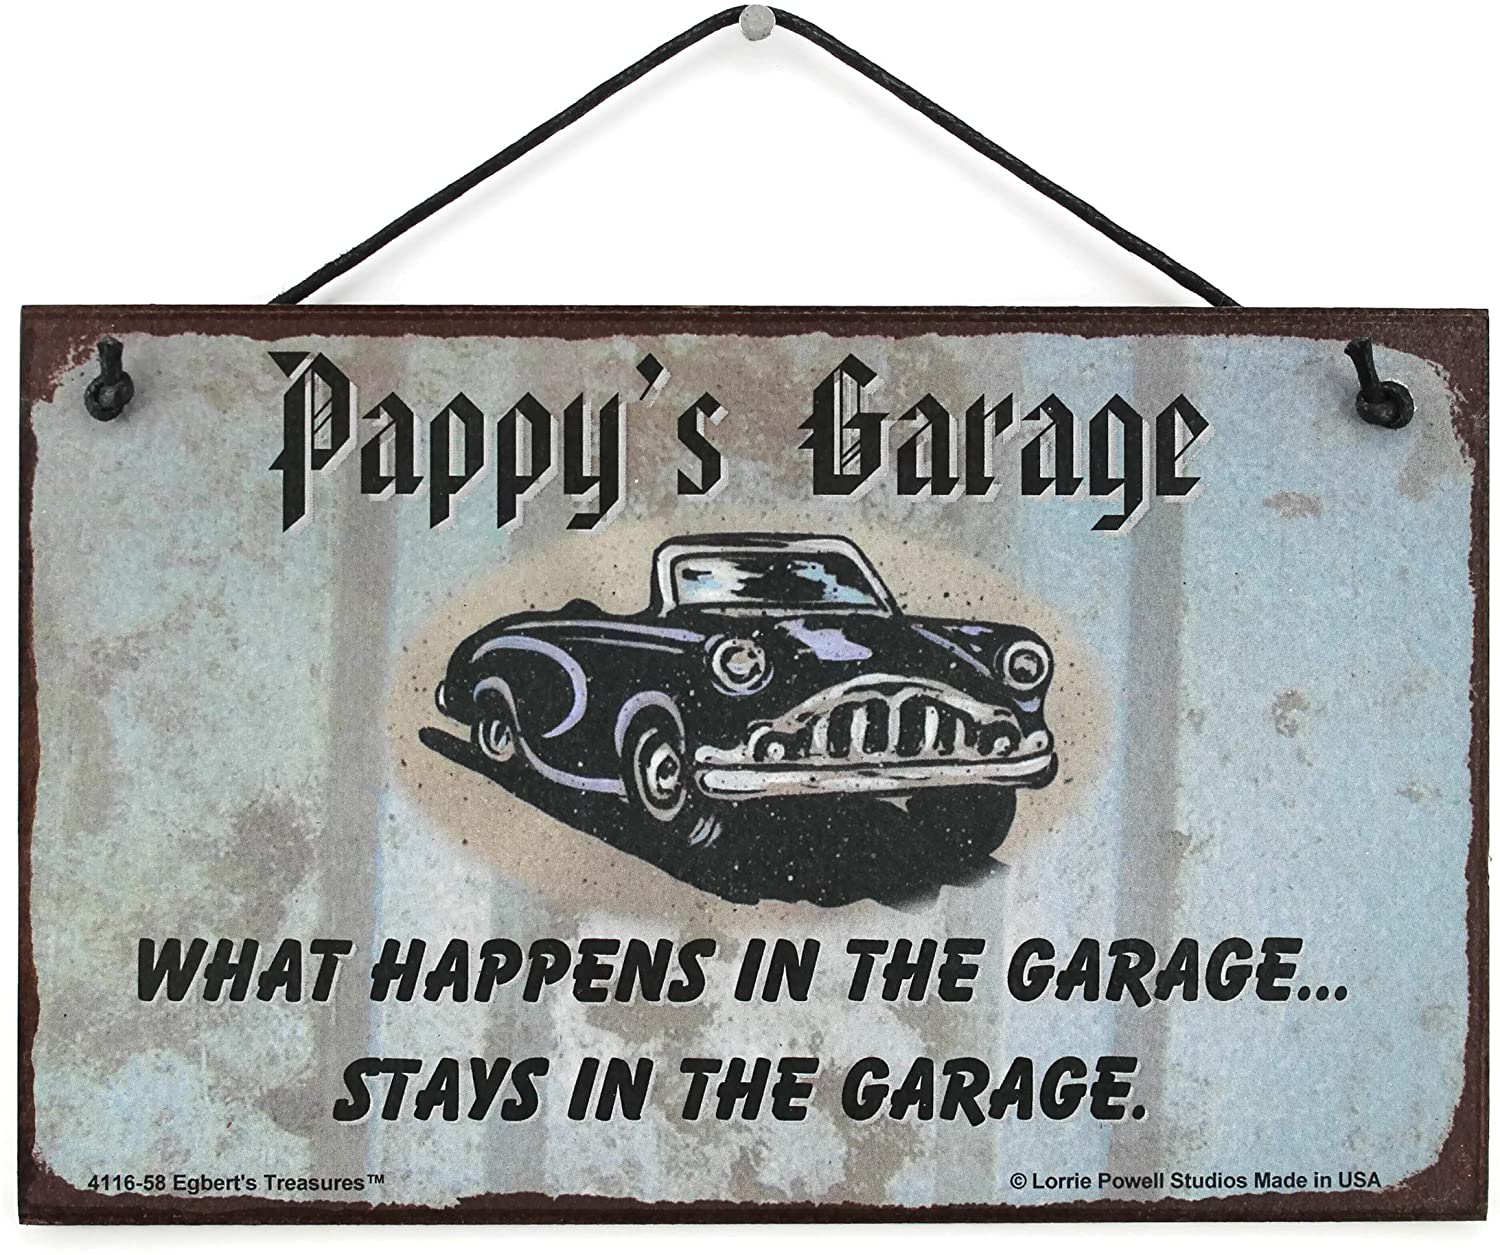 Egbert's Treasures 5x8 Sign with Classic Car Saying Pappy's Garage What Happens in The Garage. Stays in The Garage. Decorative Fun Universal Household Signs from